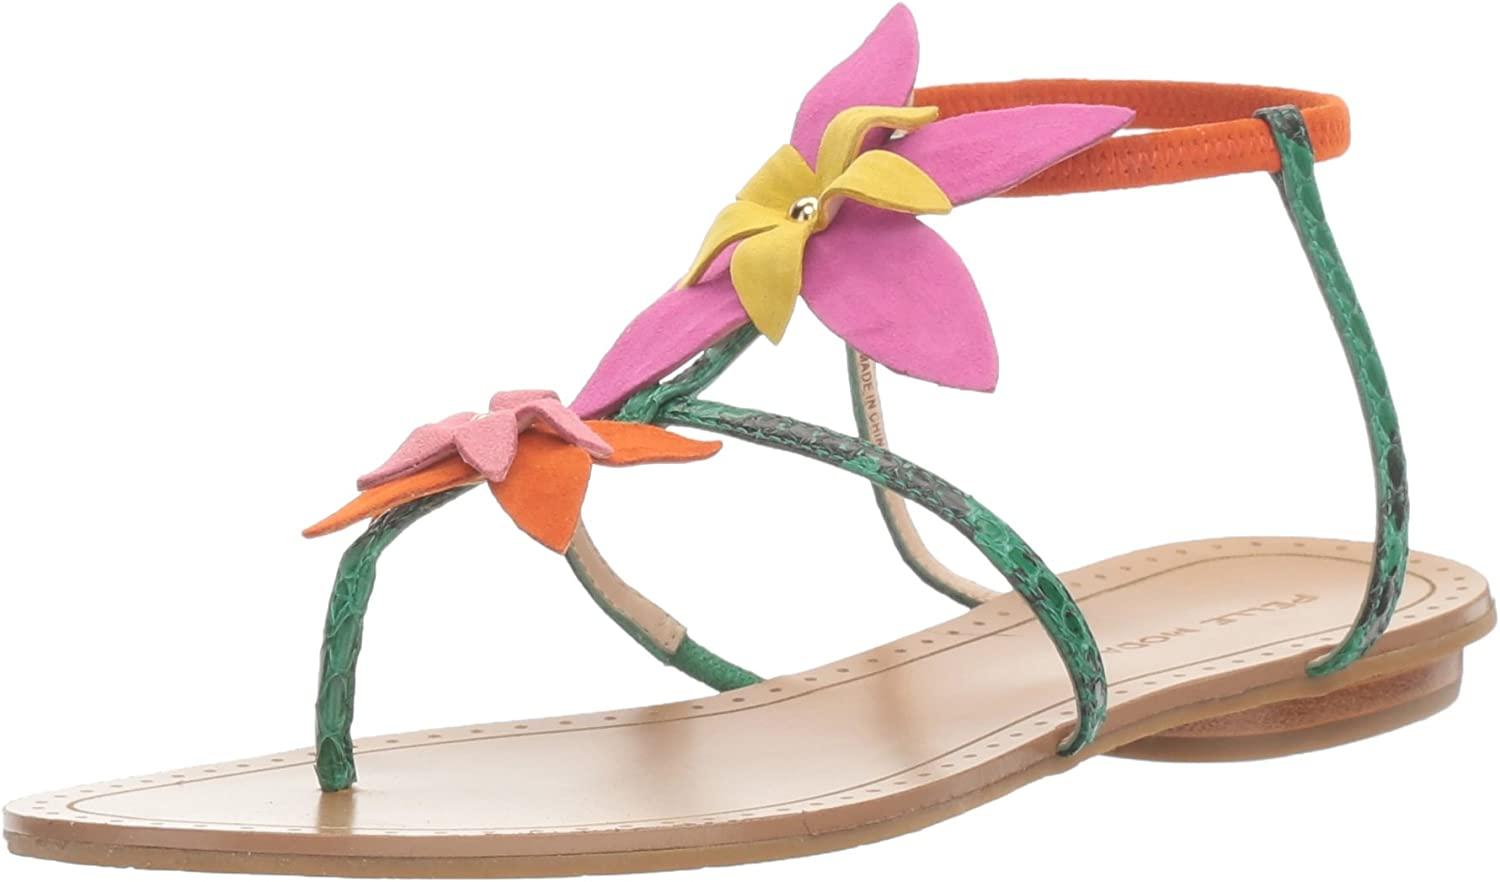 Pelle Moda Women's Ellis Dress Sandal